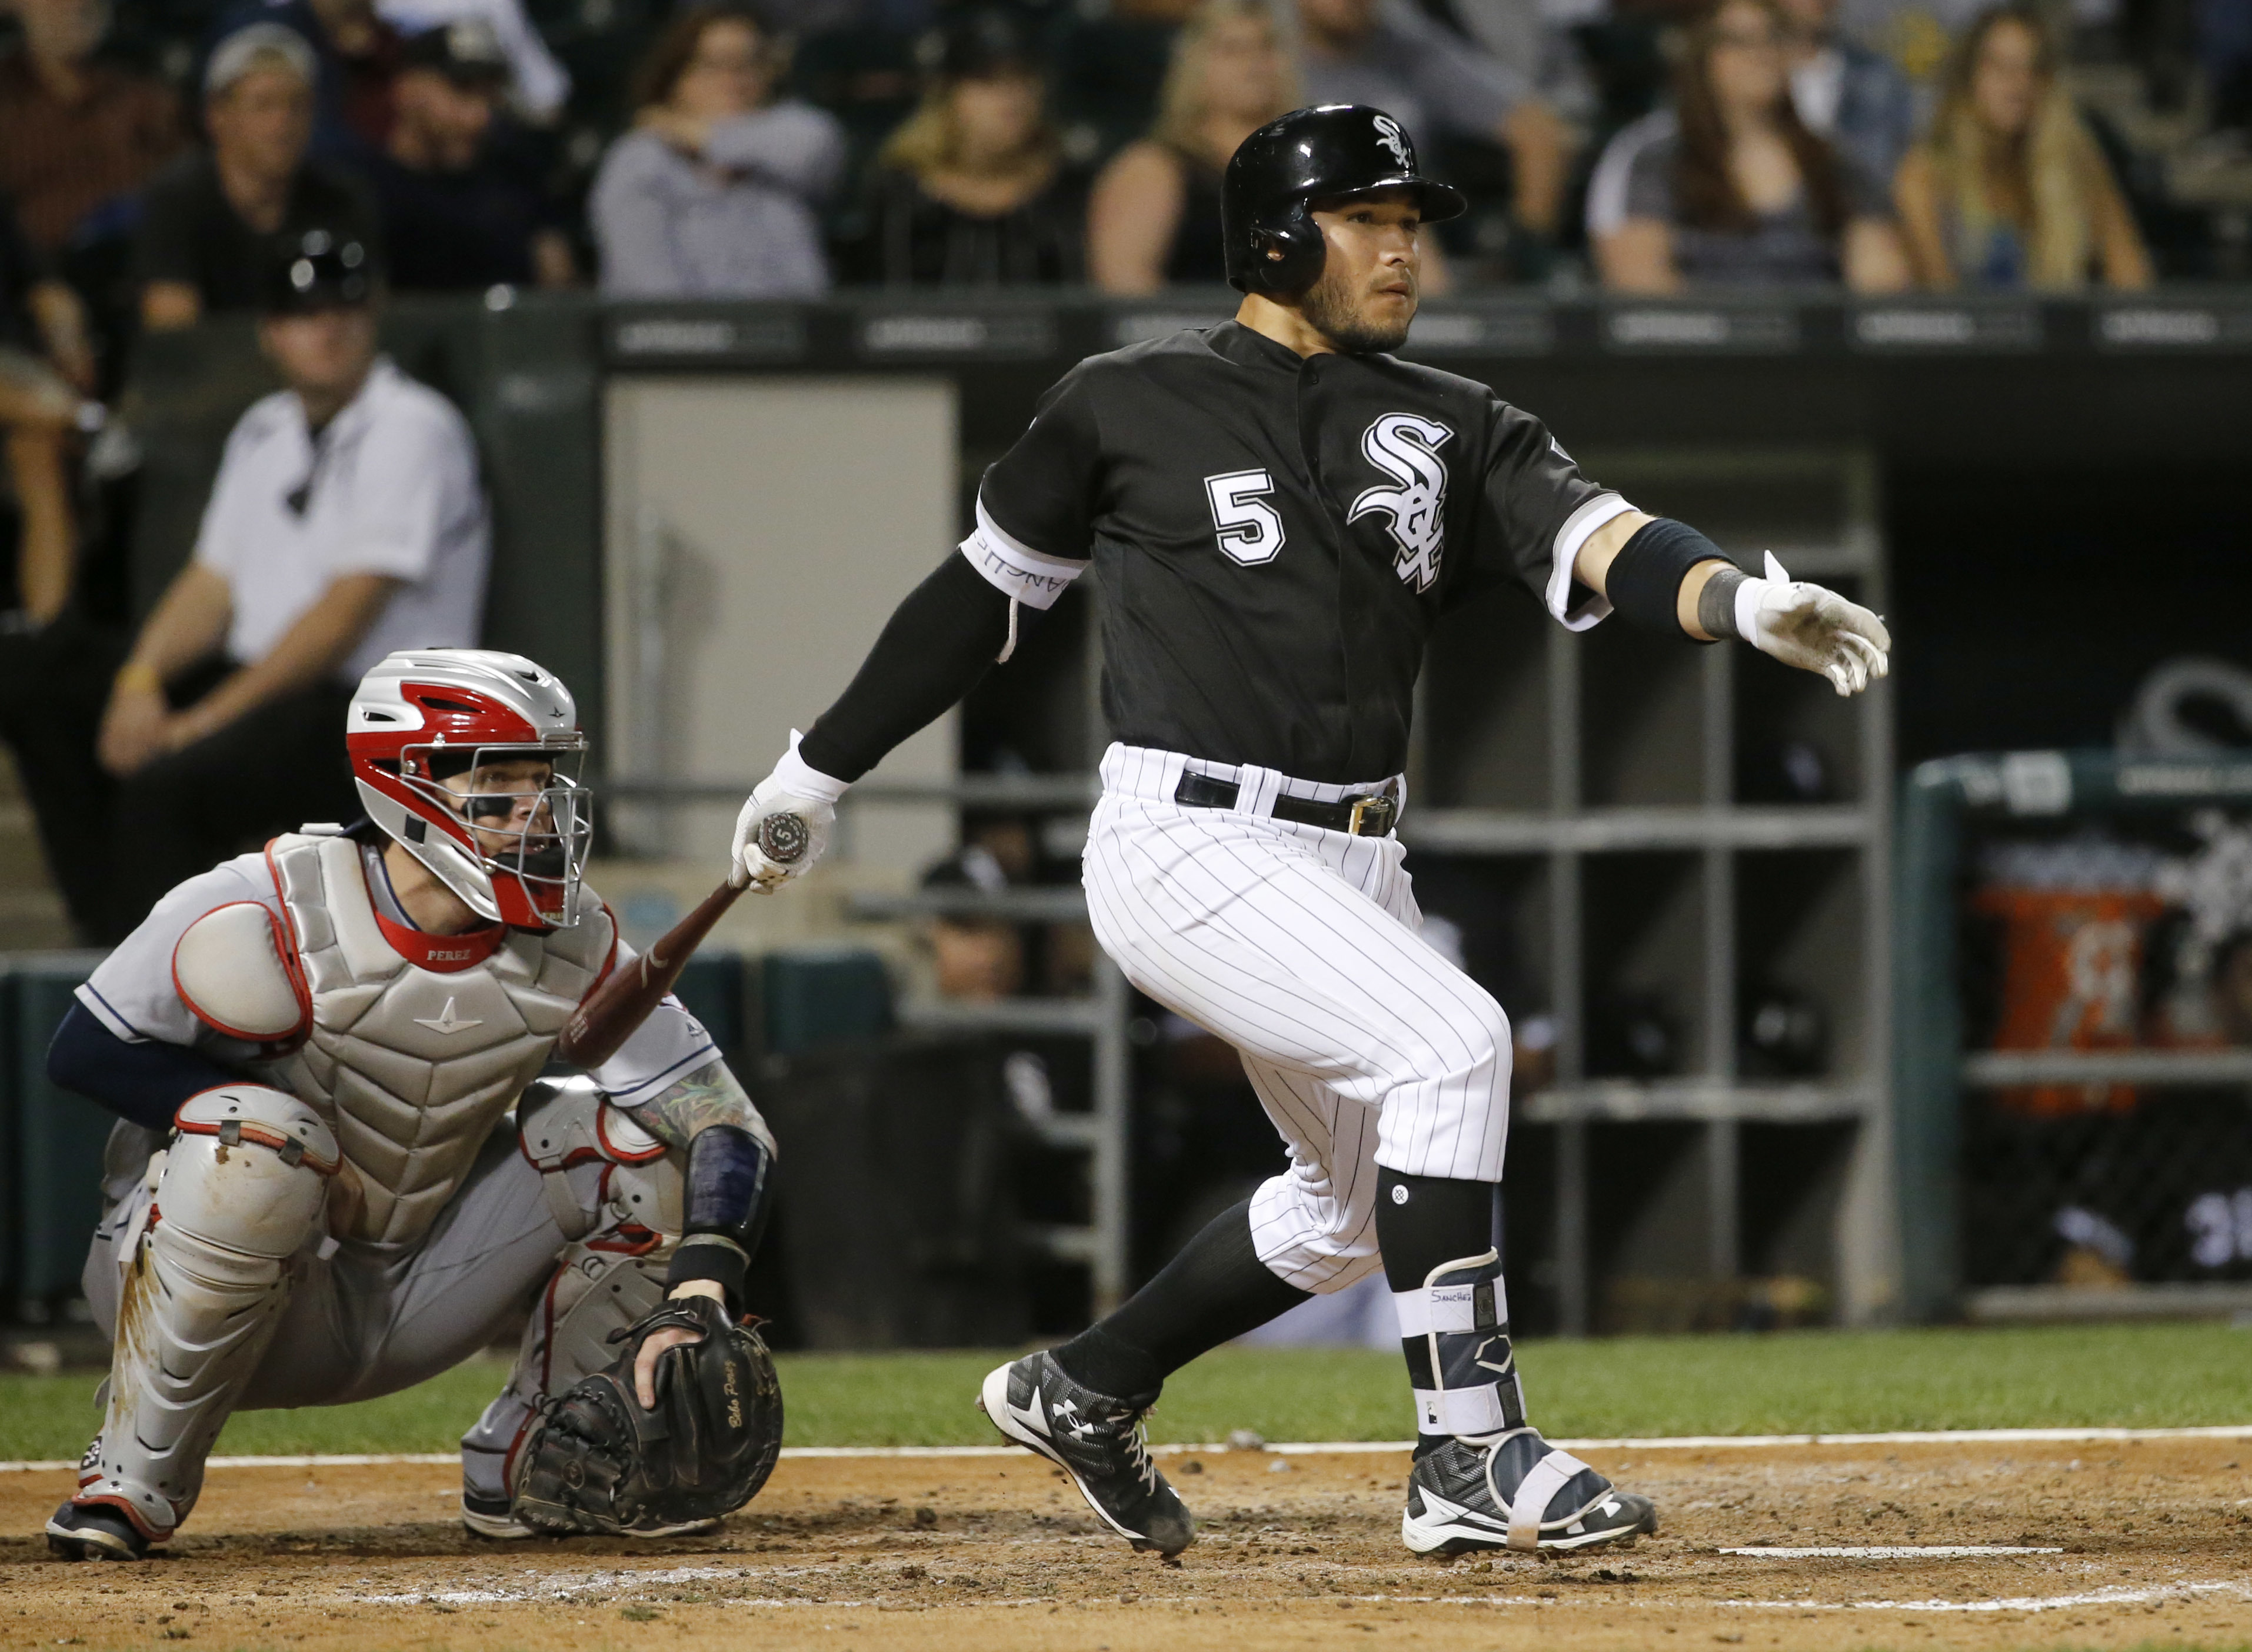 Chicago White Sox's Carlos Sanchez (5) watches his two-run triple off Cleveland Indians relief pitcher Dan Otero with catcher Roberto Perez, scoring Todd Frazier, Avisail Garcia, during the sixth inning of a baseball game, Tuesday, Sept. 13, 2016, in Chic